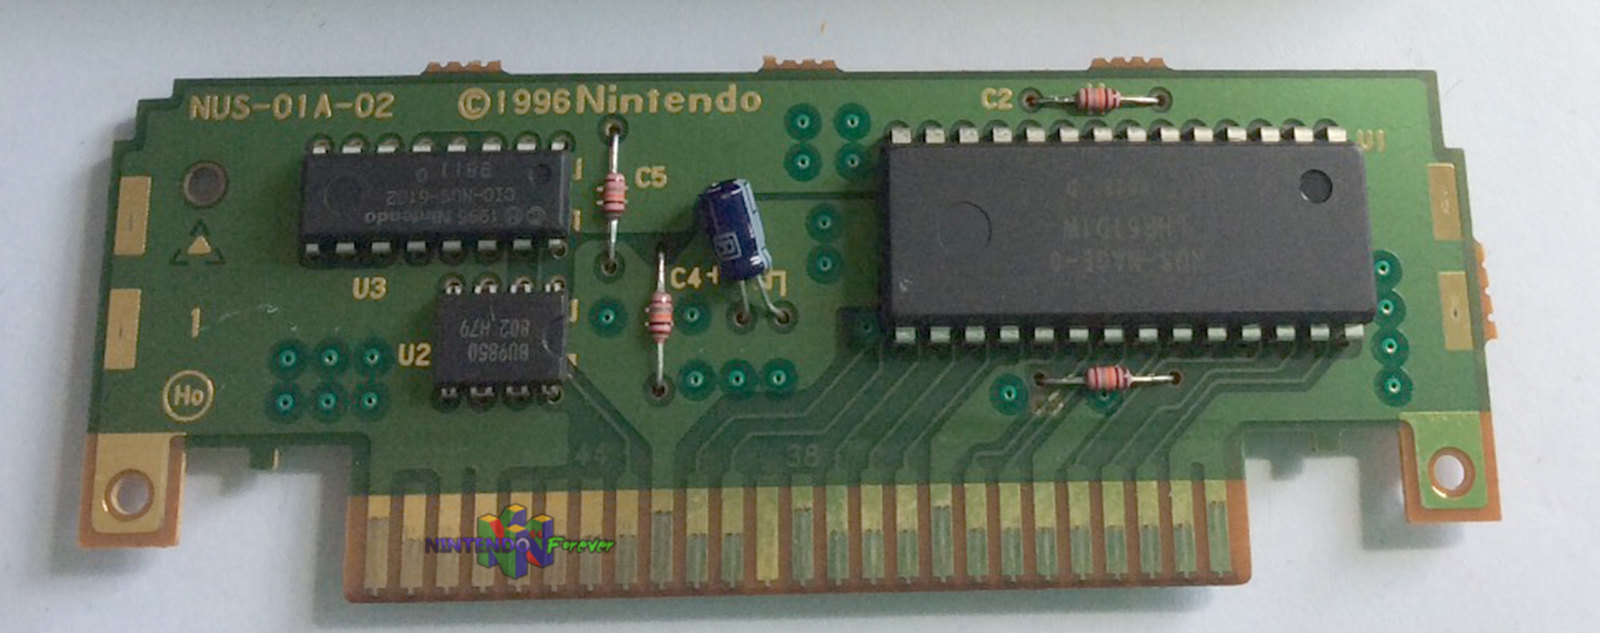 N64 Cartridge Board Scan/Picture Repository Complete